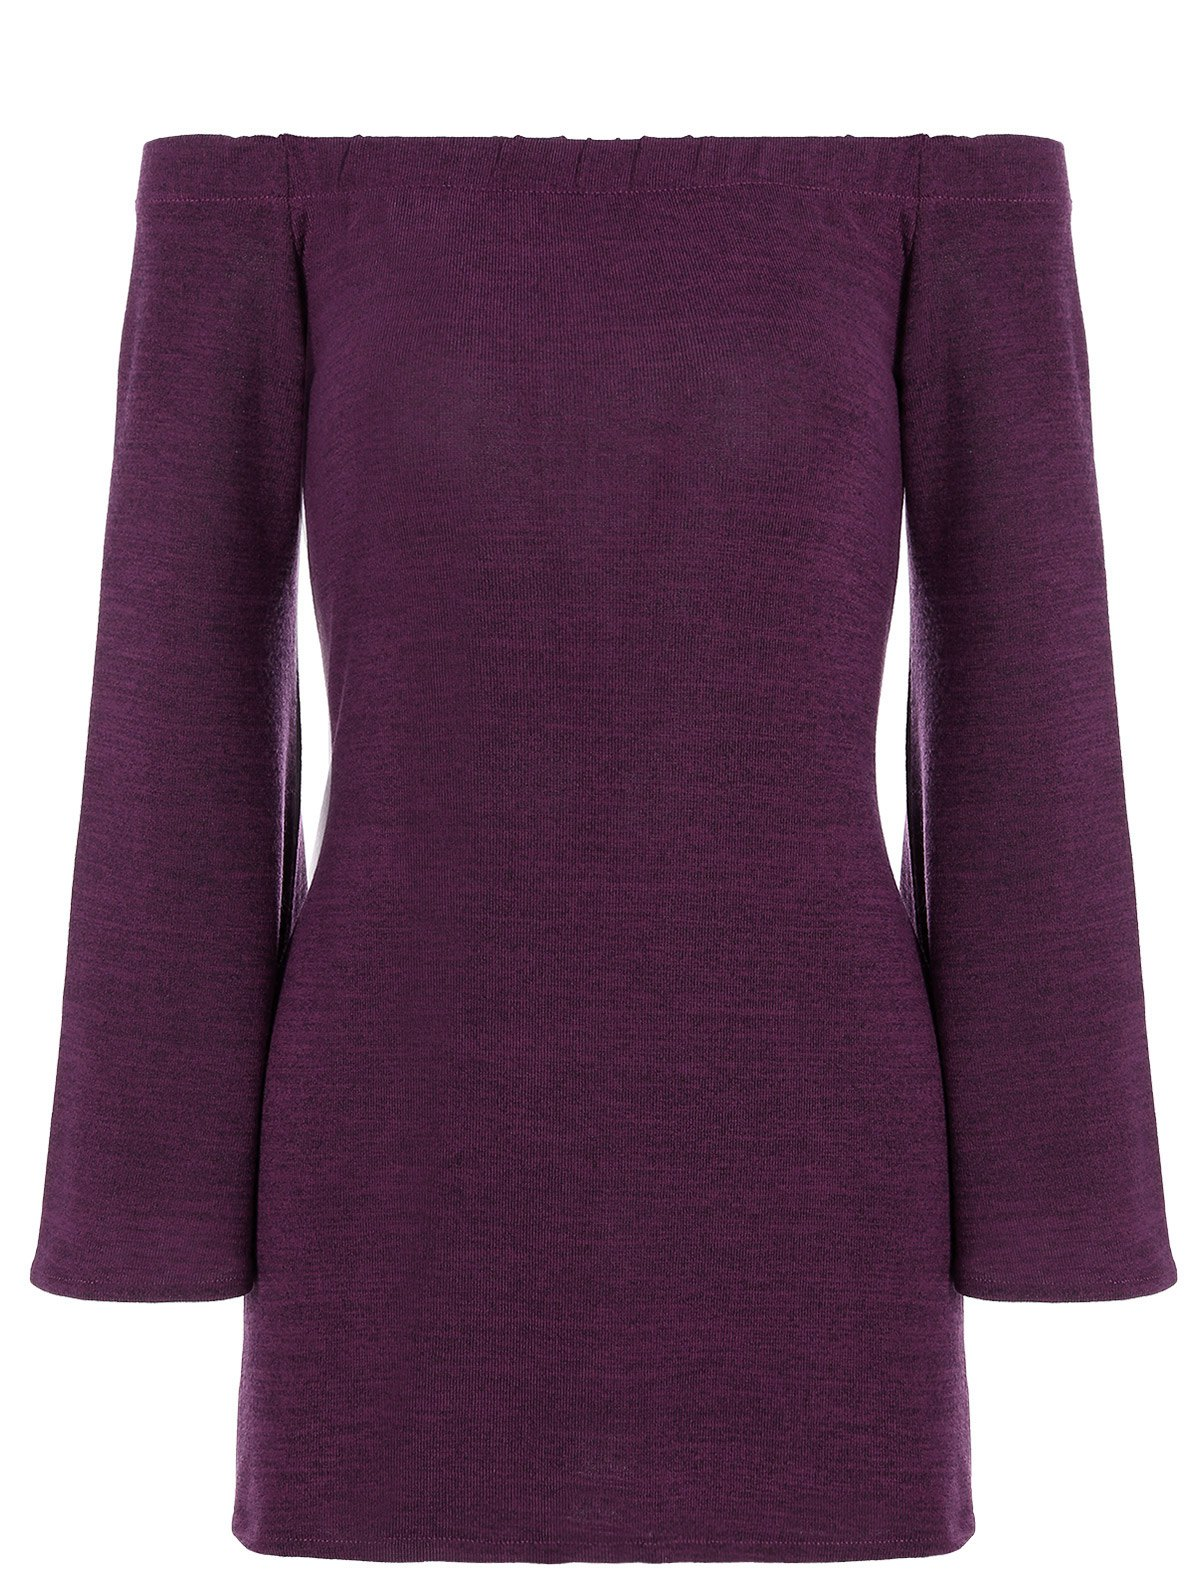 Off the Shoulder Long Sleeves T-ShirtWomen<br><br><br>Size: XL<br>Color: FUCHSIA ROSE